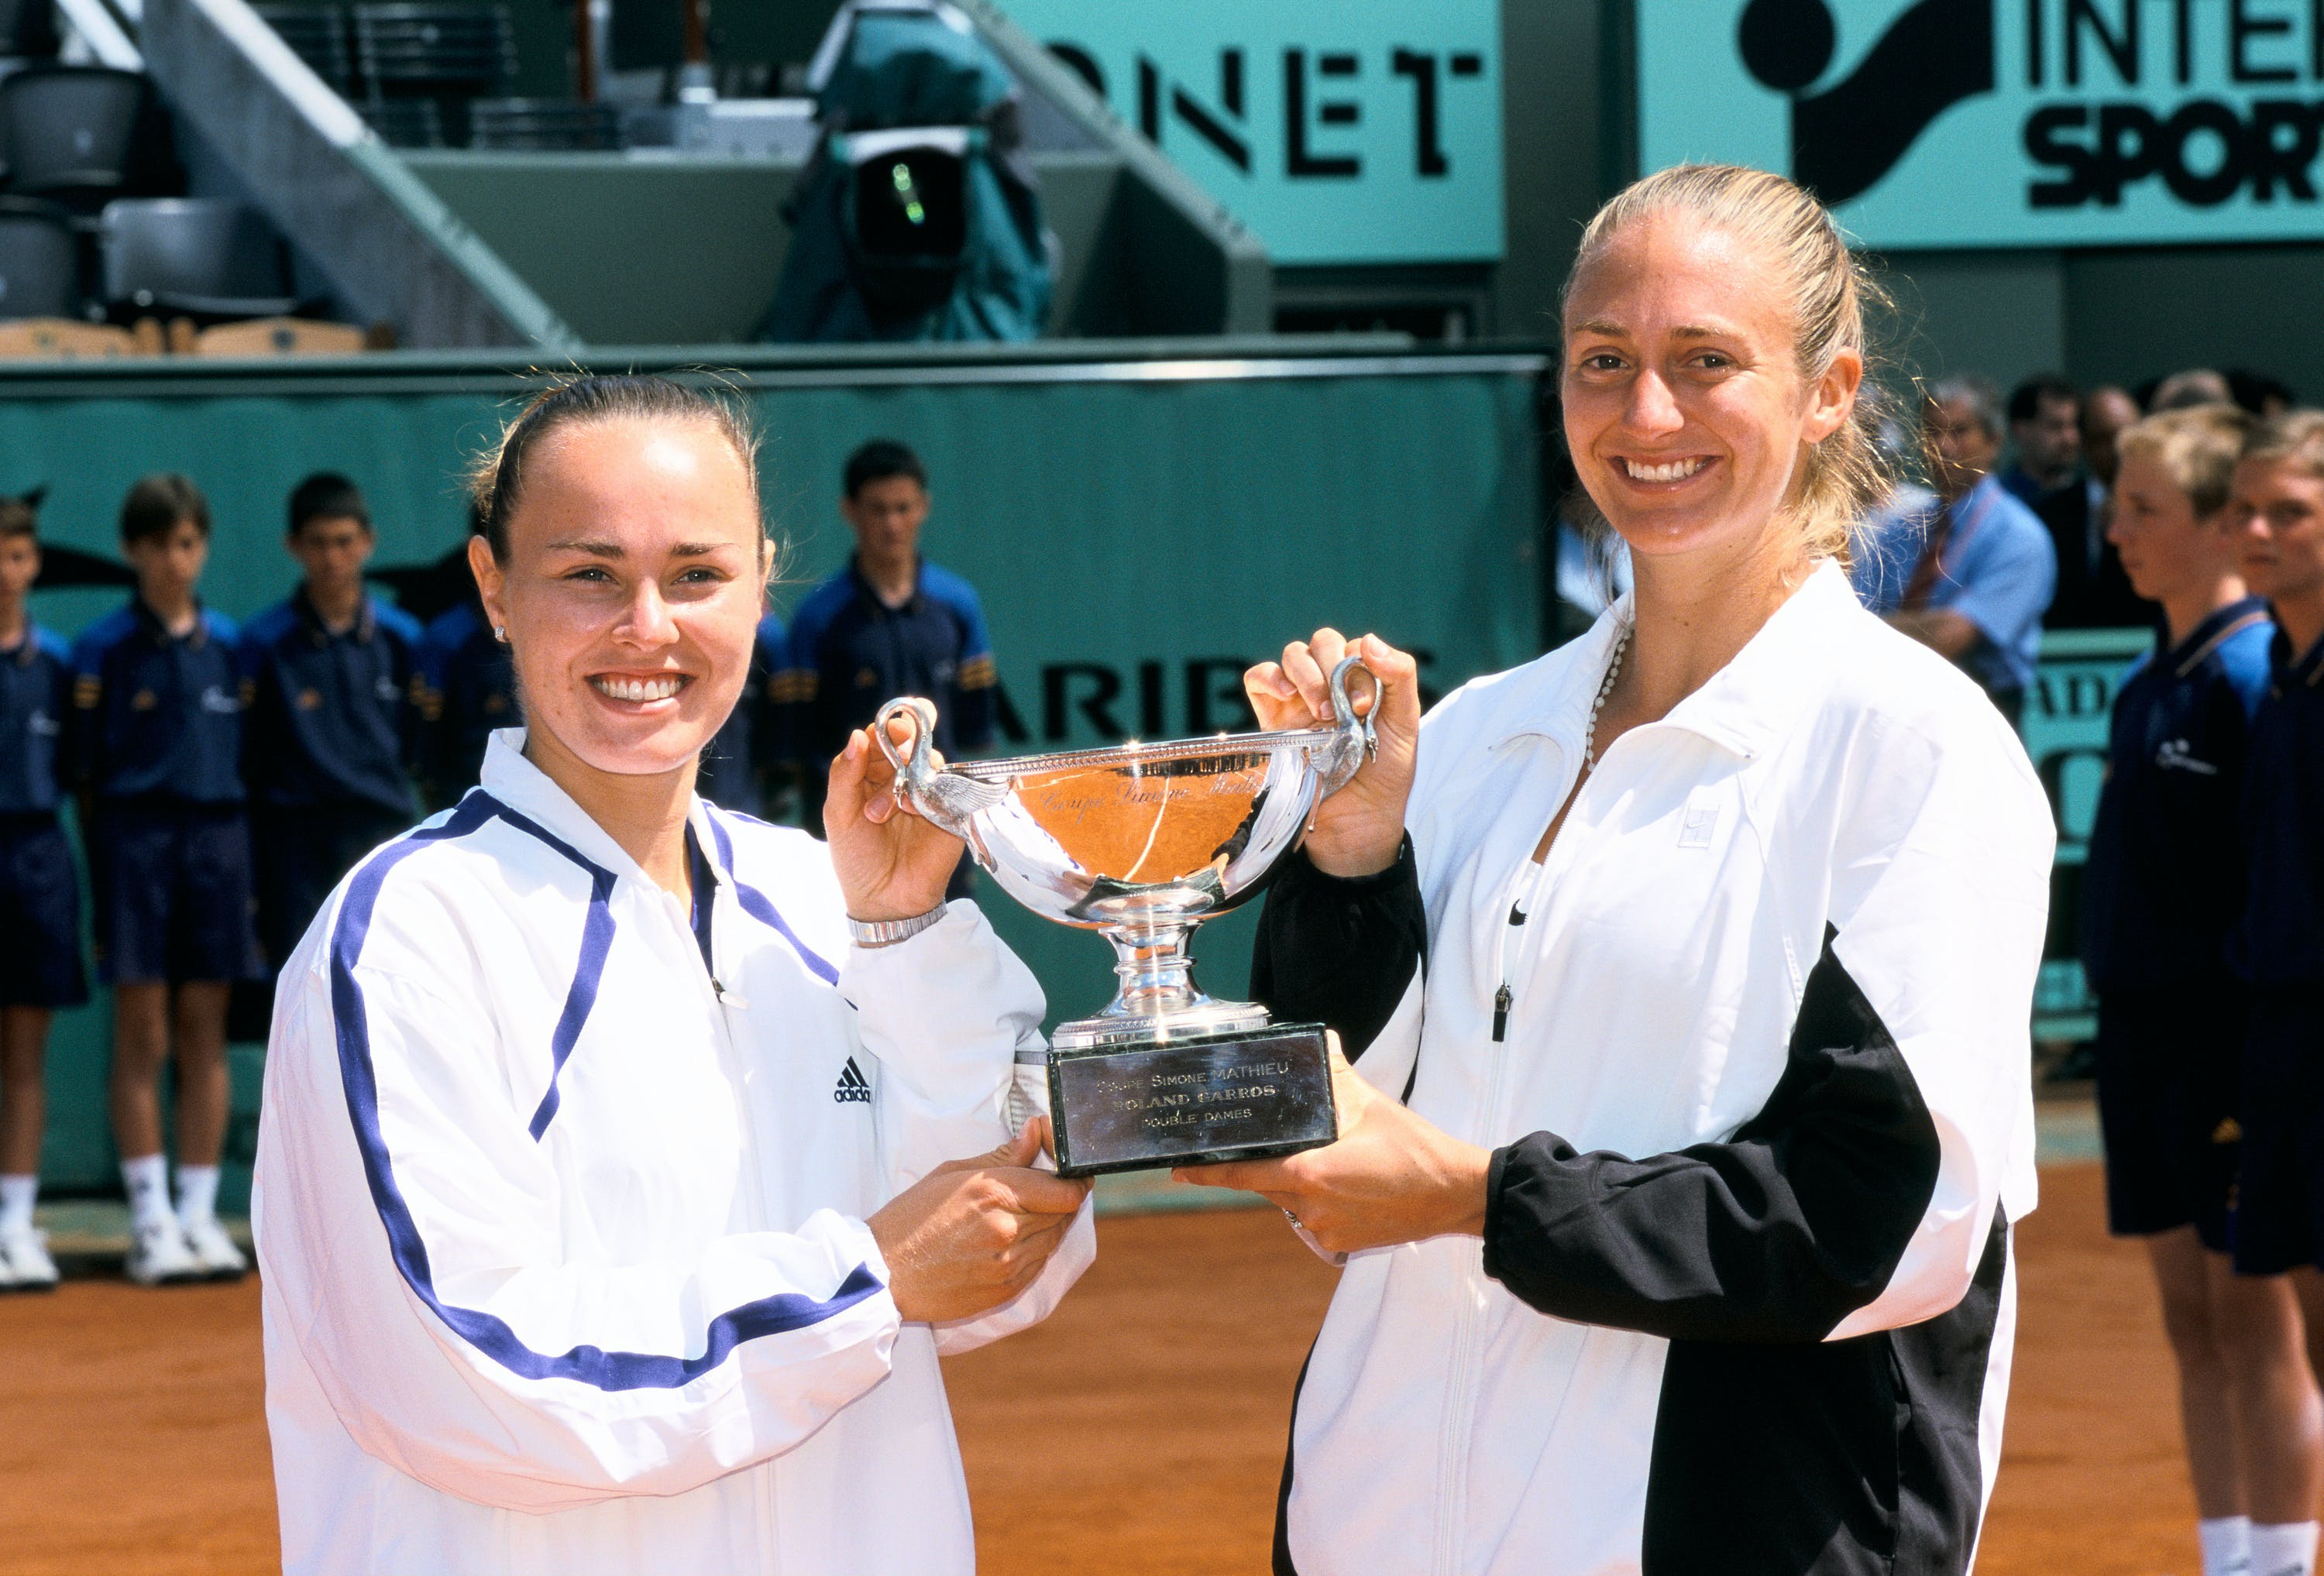 Martina Hingis & Mary Pierce after the double final at Roland-Garros 2000